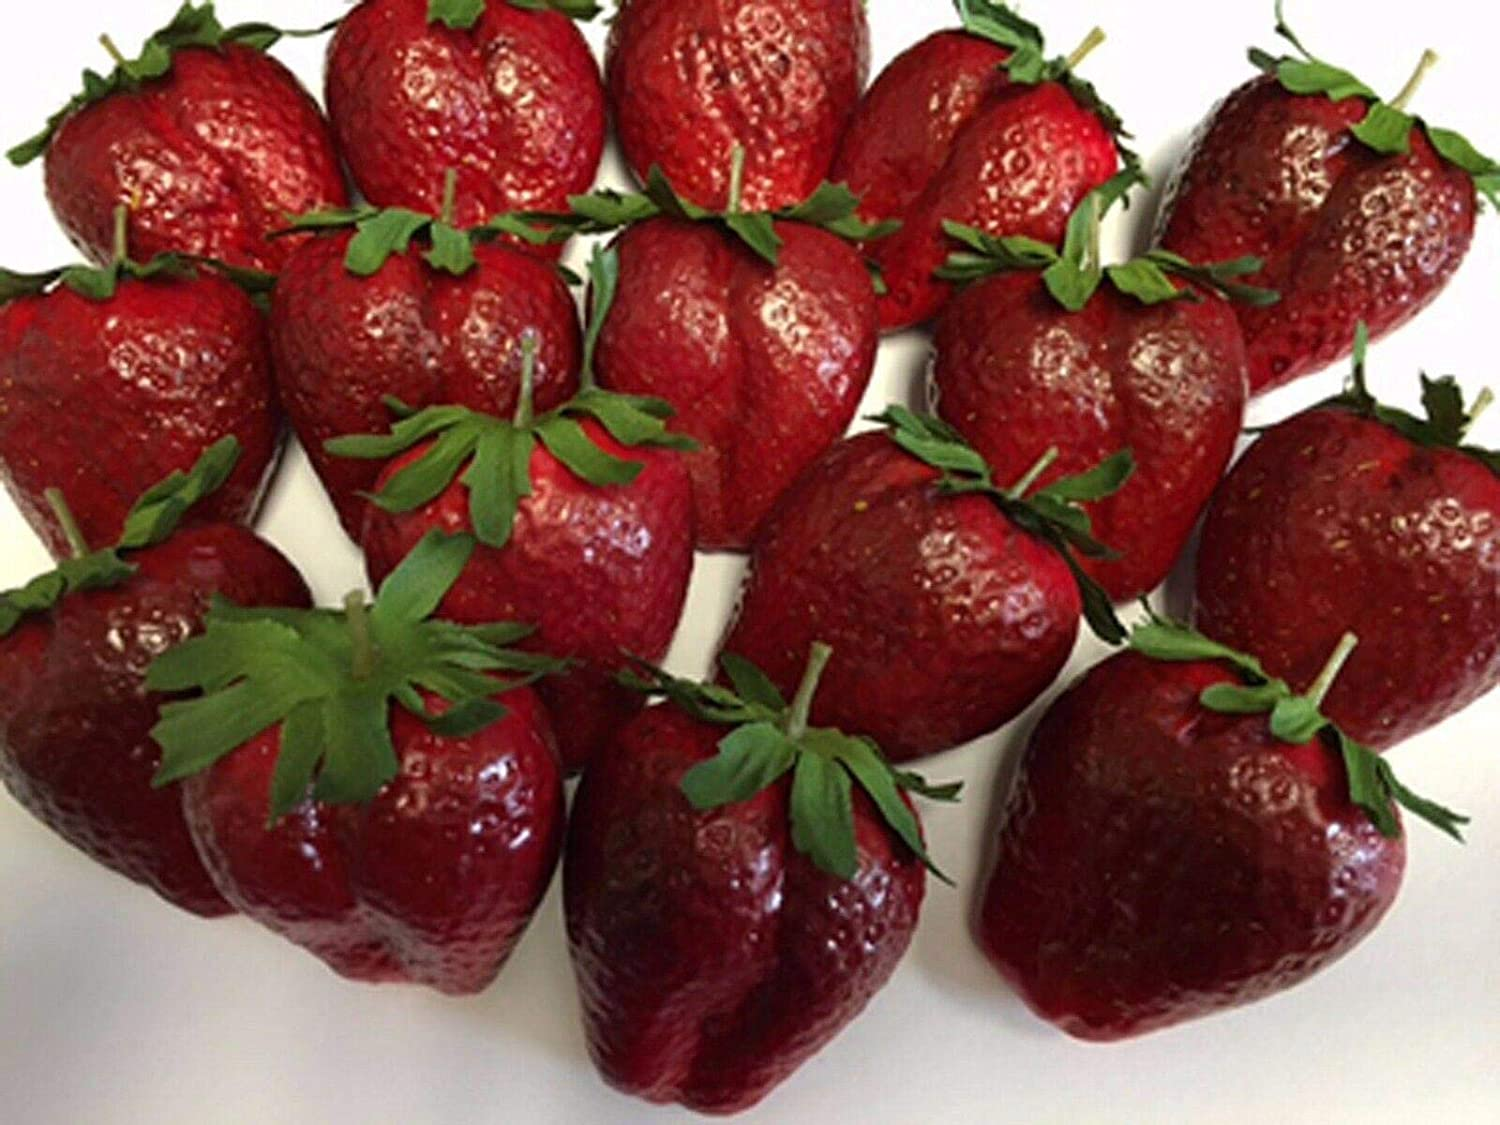 Artificial Large Strawberry Bag 100% quality warranty! of 24 Fruit Free shipping on posting reviews Strawber Decorative